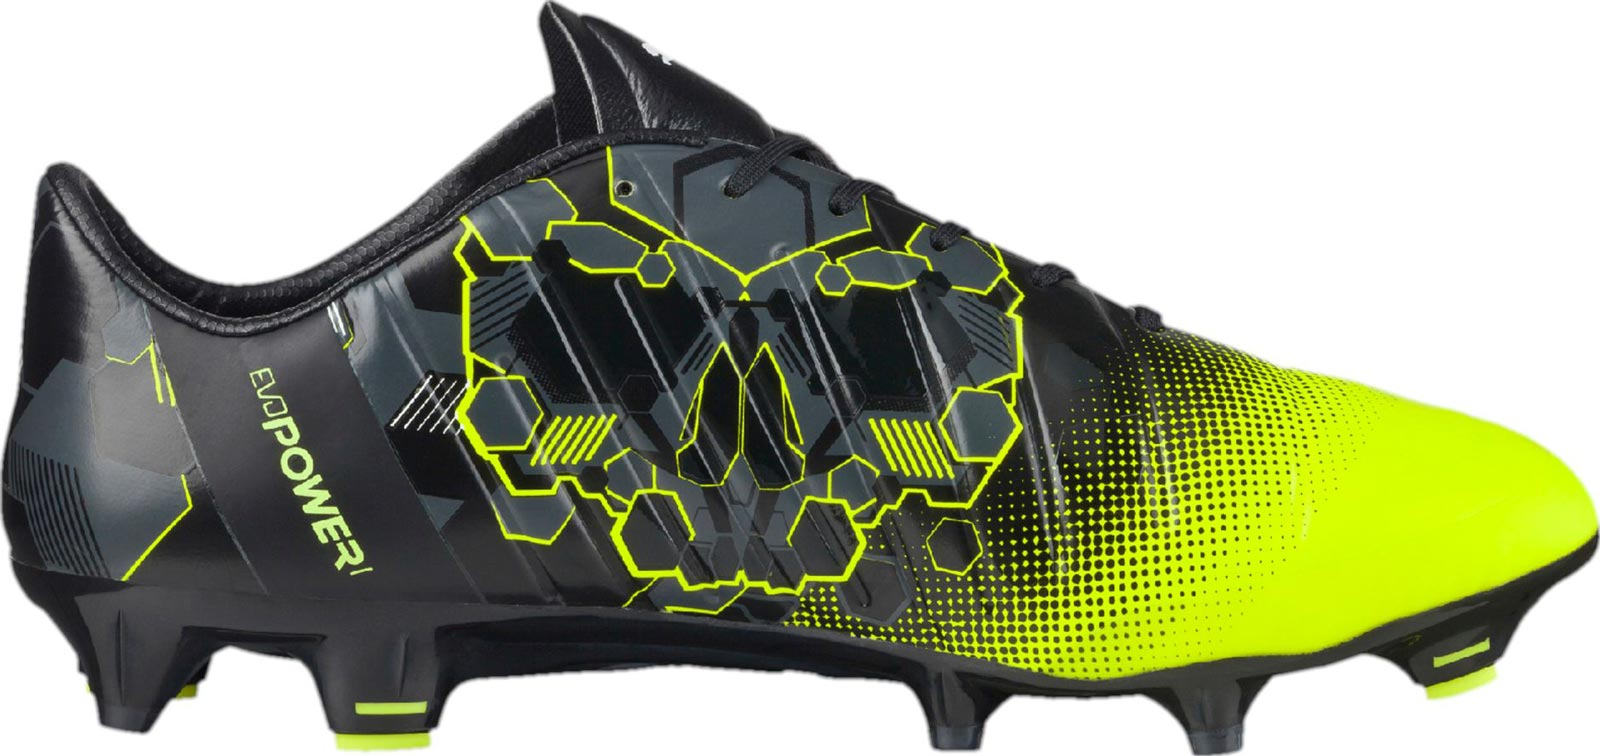 Puma evoPOWER Graphic 2016-2017 Boots Released - Footy ...